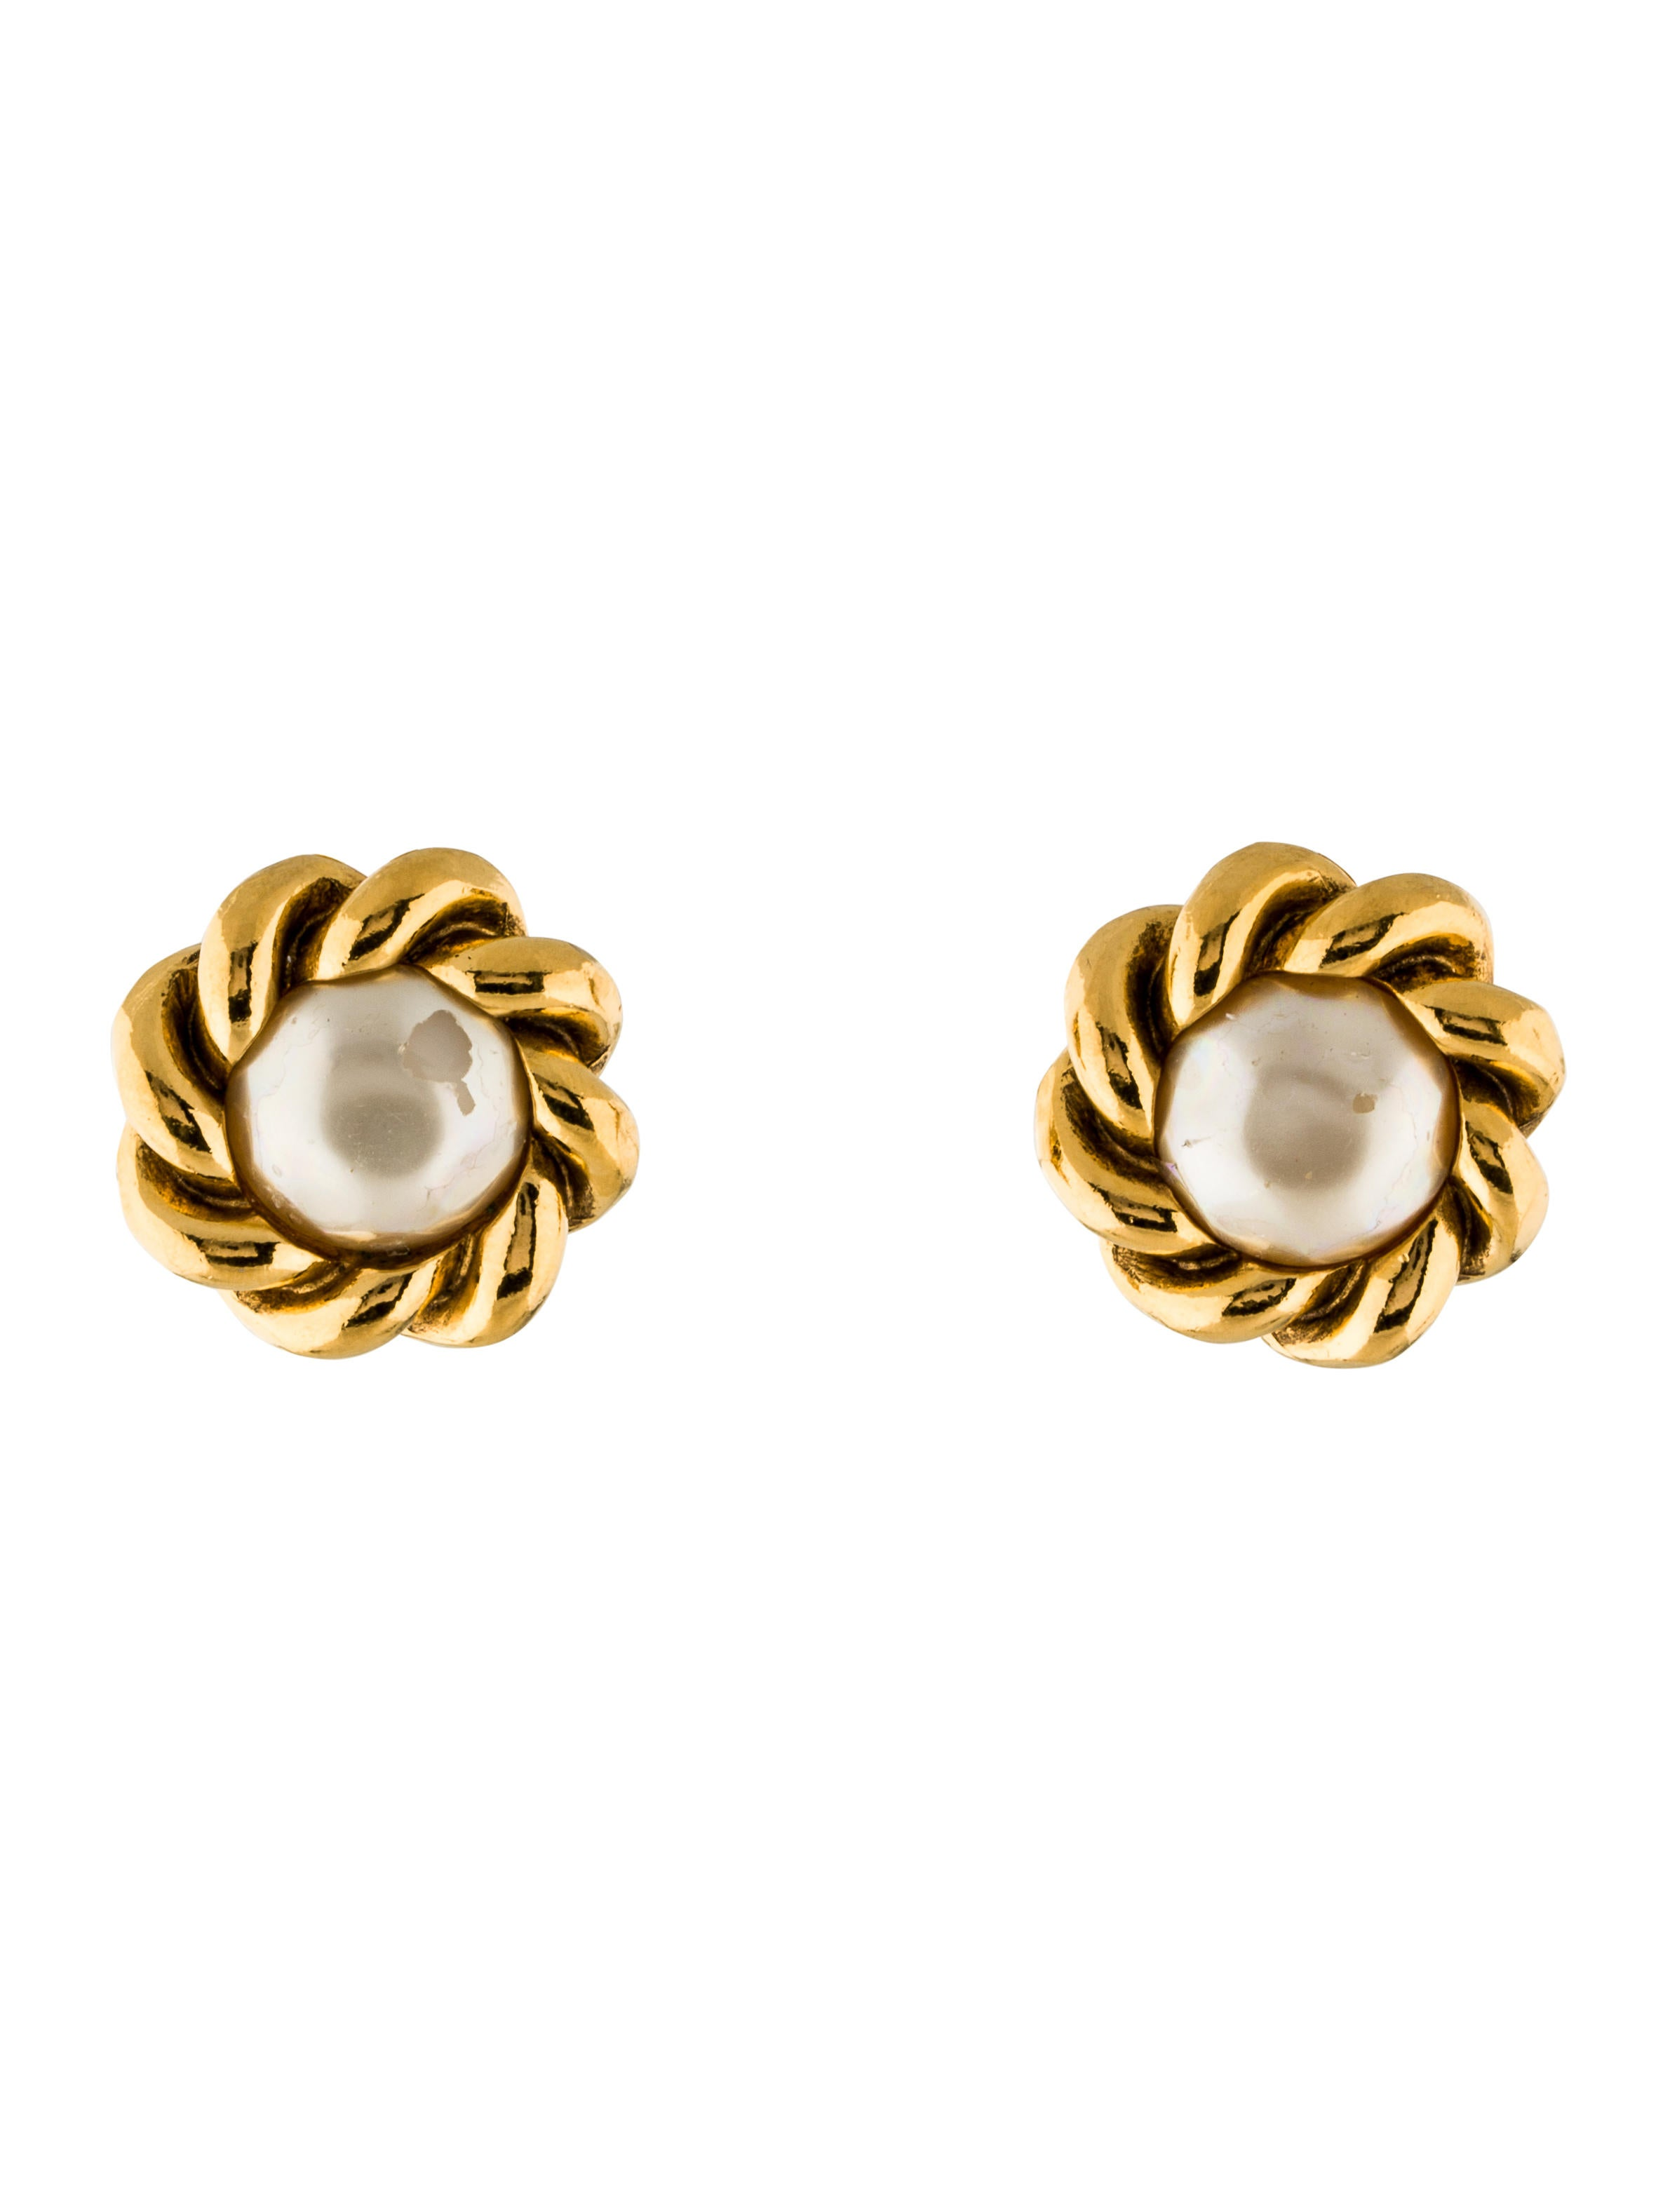 channel jewelry earrings chanel pearl clip on earrings earrings cha183517 the 1439